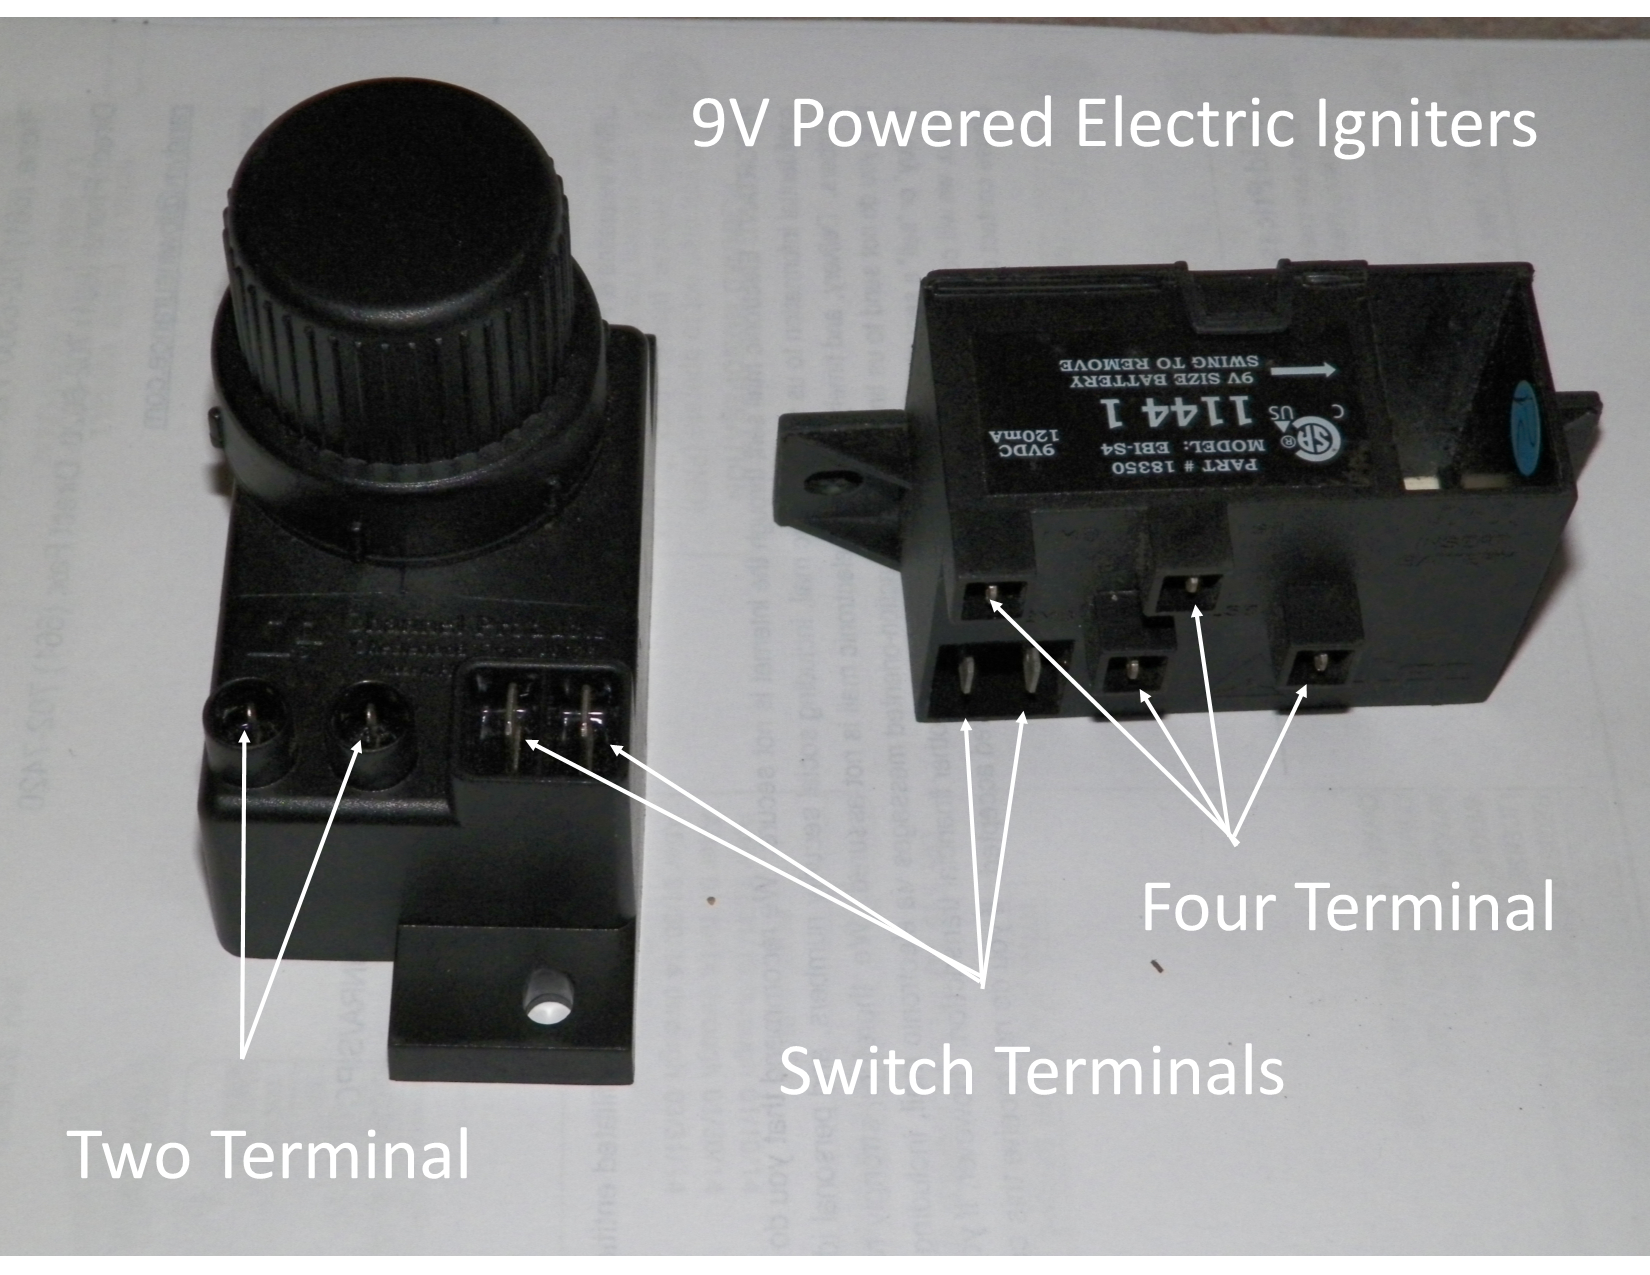 Gas Grill Ignition Systems - Grill Ignitor Wiring Diagram